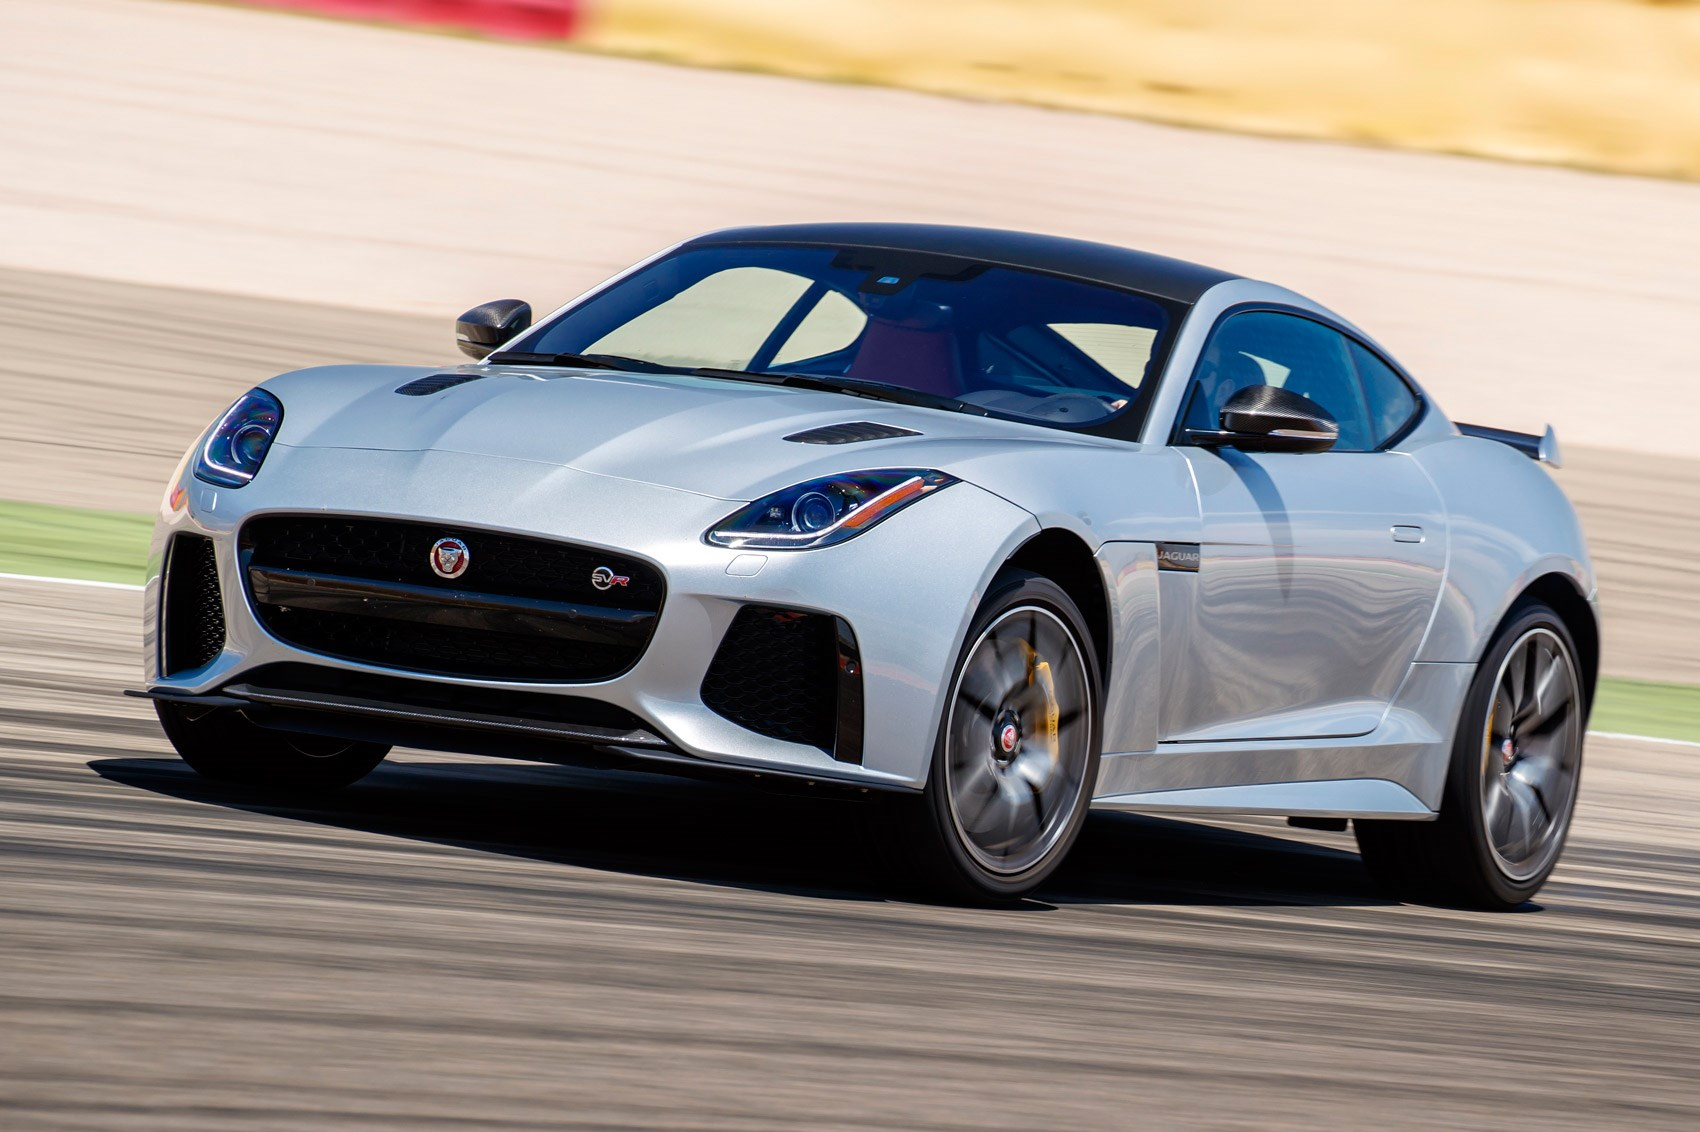 Jaguar F Type Svr 2016 Review on jaguar f type car model